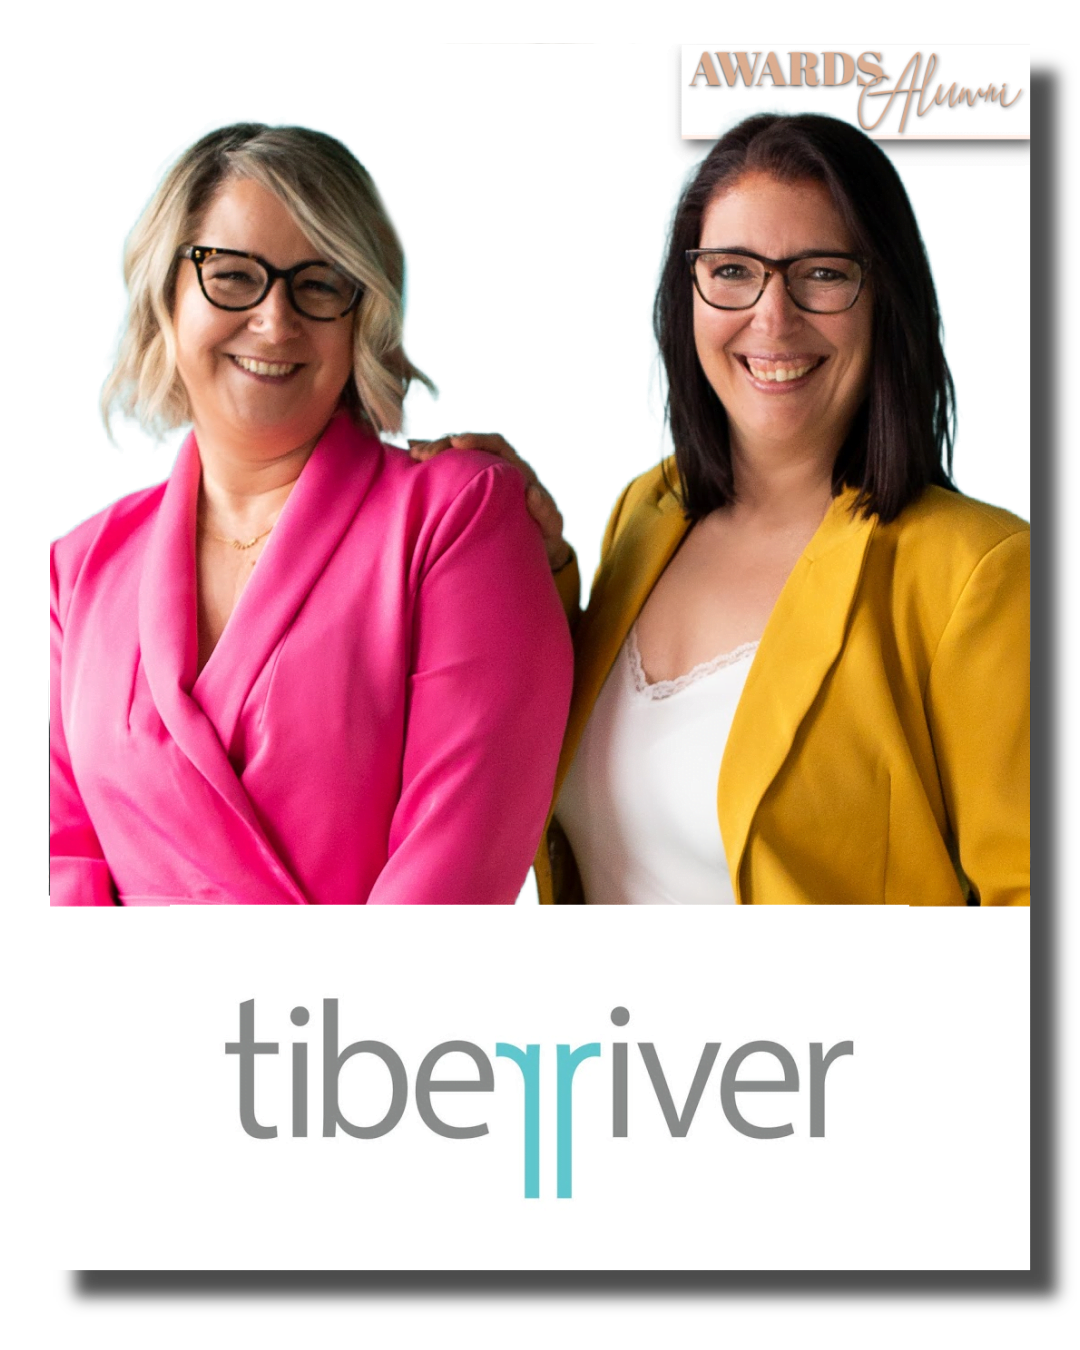 Michelle and Adriana of Tiber River